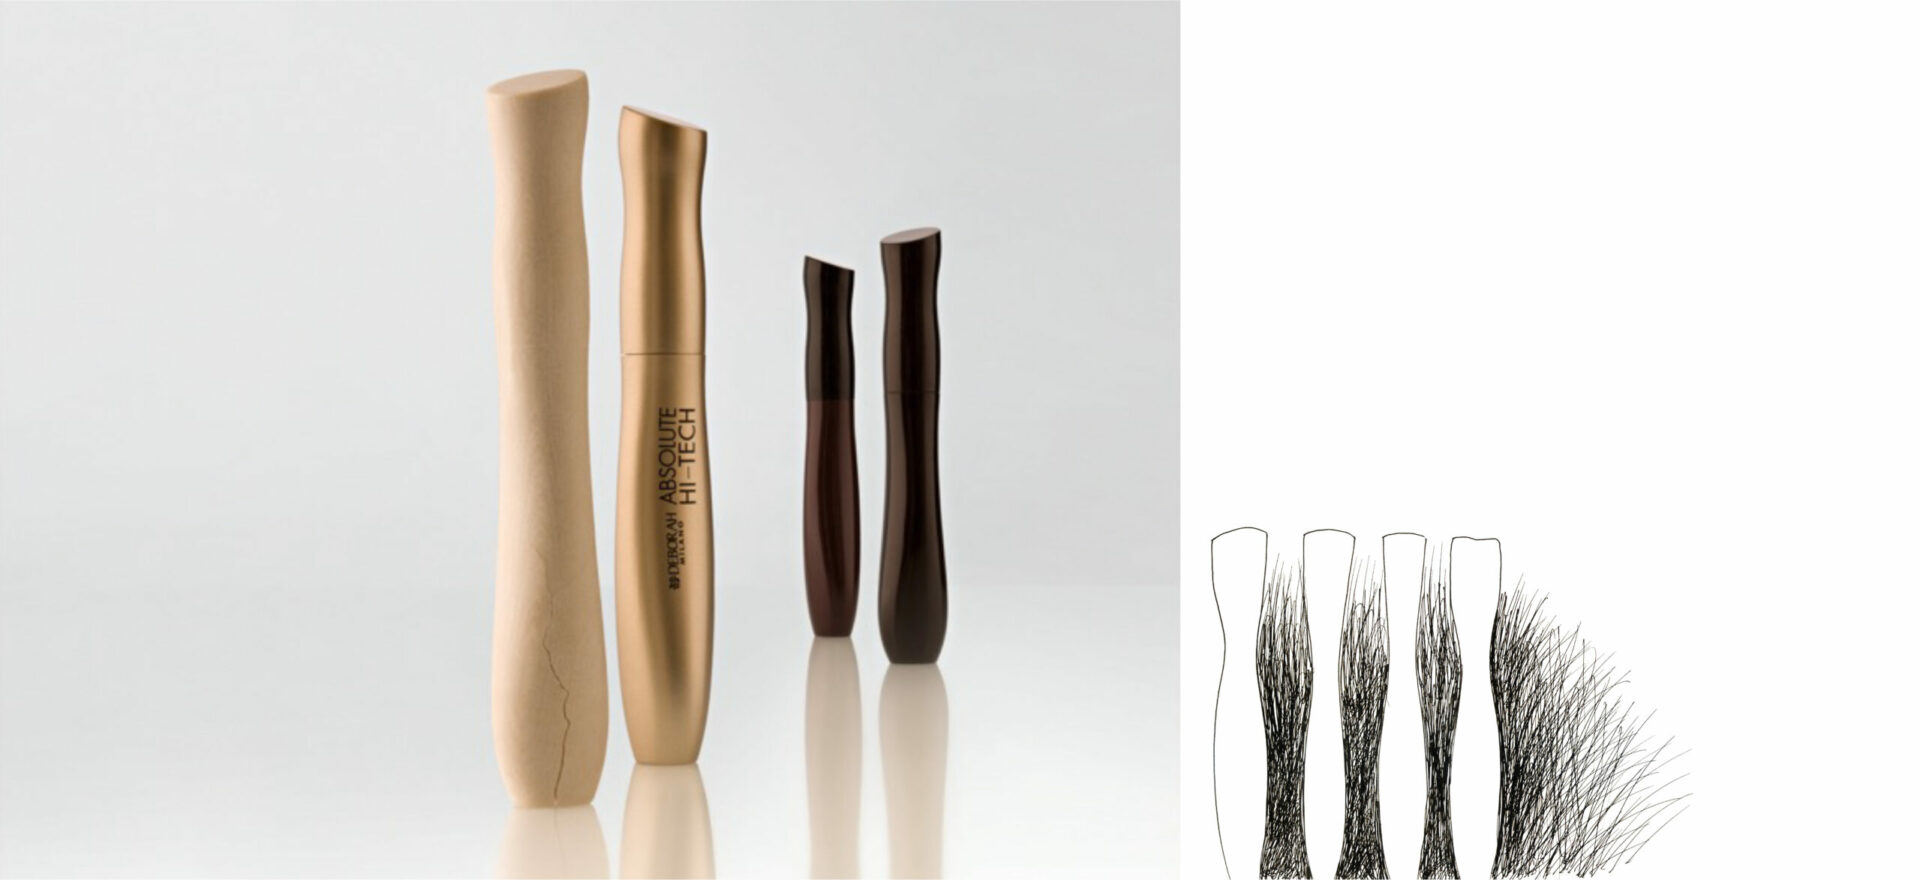 Four packages of Mascara beauty products for Deborah Milano in color with a greyscale background. In 2007 the packaging of the Bioetyc skincare line won the Good Design Award.